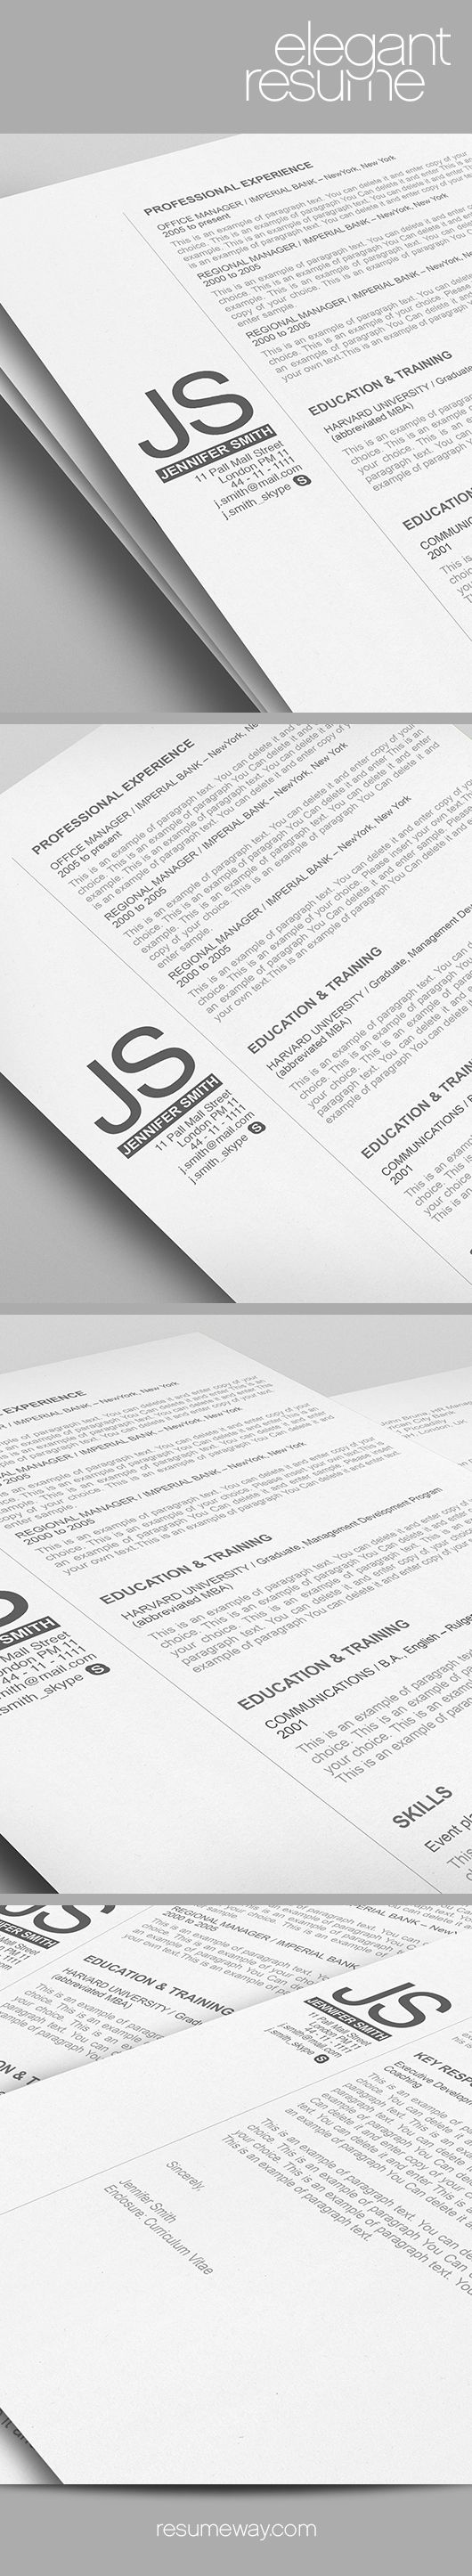 best ideas about resume layout resume design elegant resume template 110540 premium line of resume cover letter templates easy